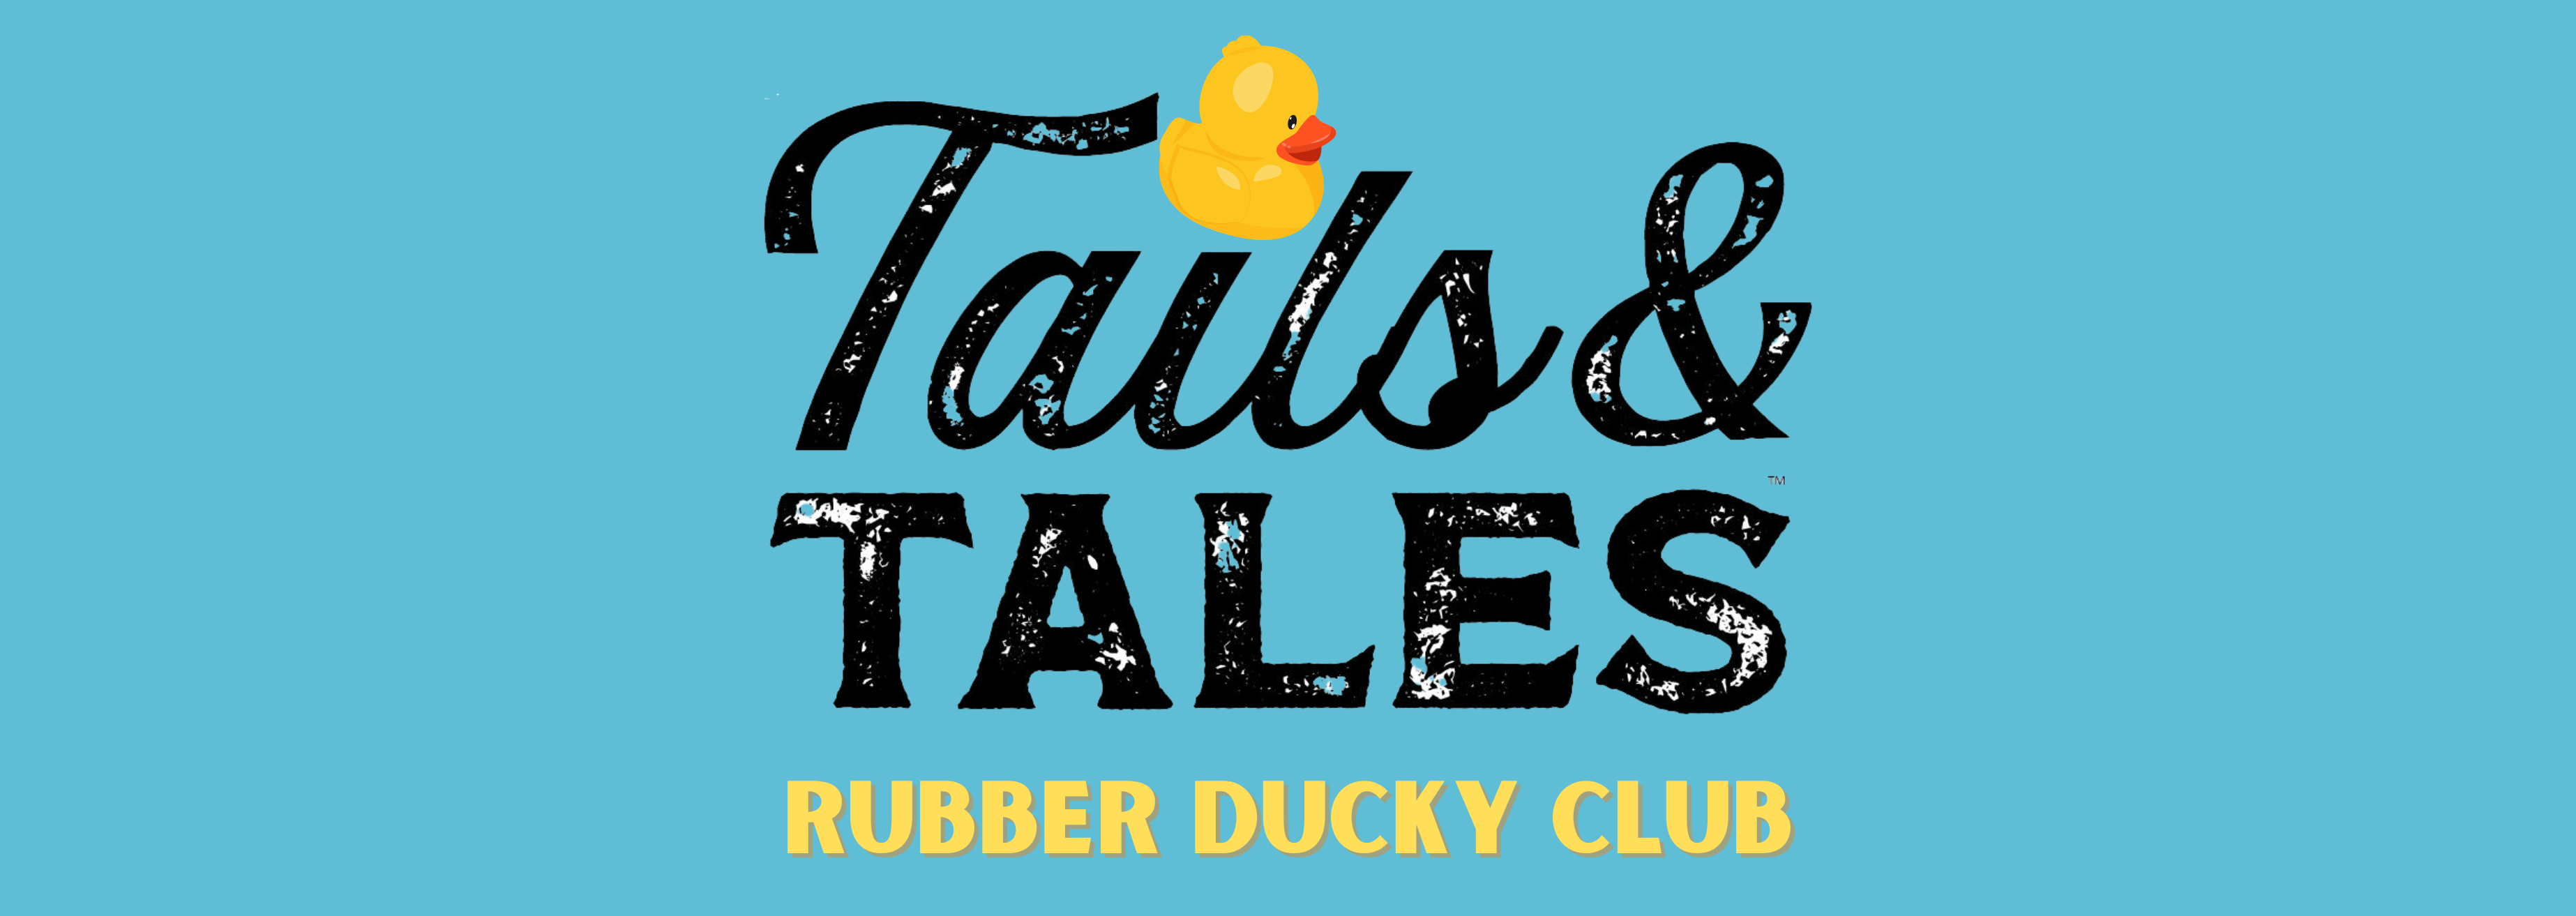 Blue background with black text in the center with an illustration of a rubber duck as the dot over the letter 'i'. Underneath that is golden-colored text.